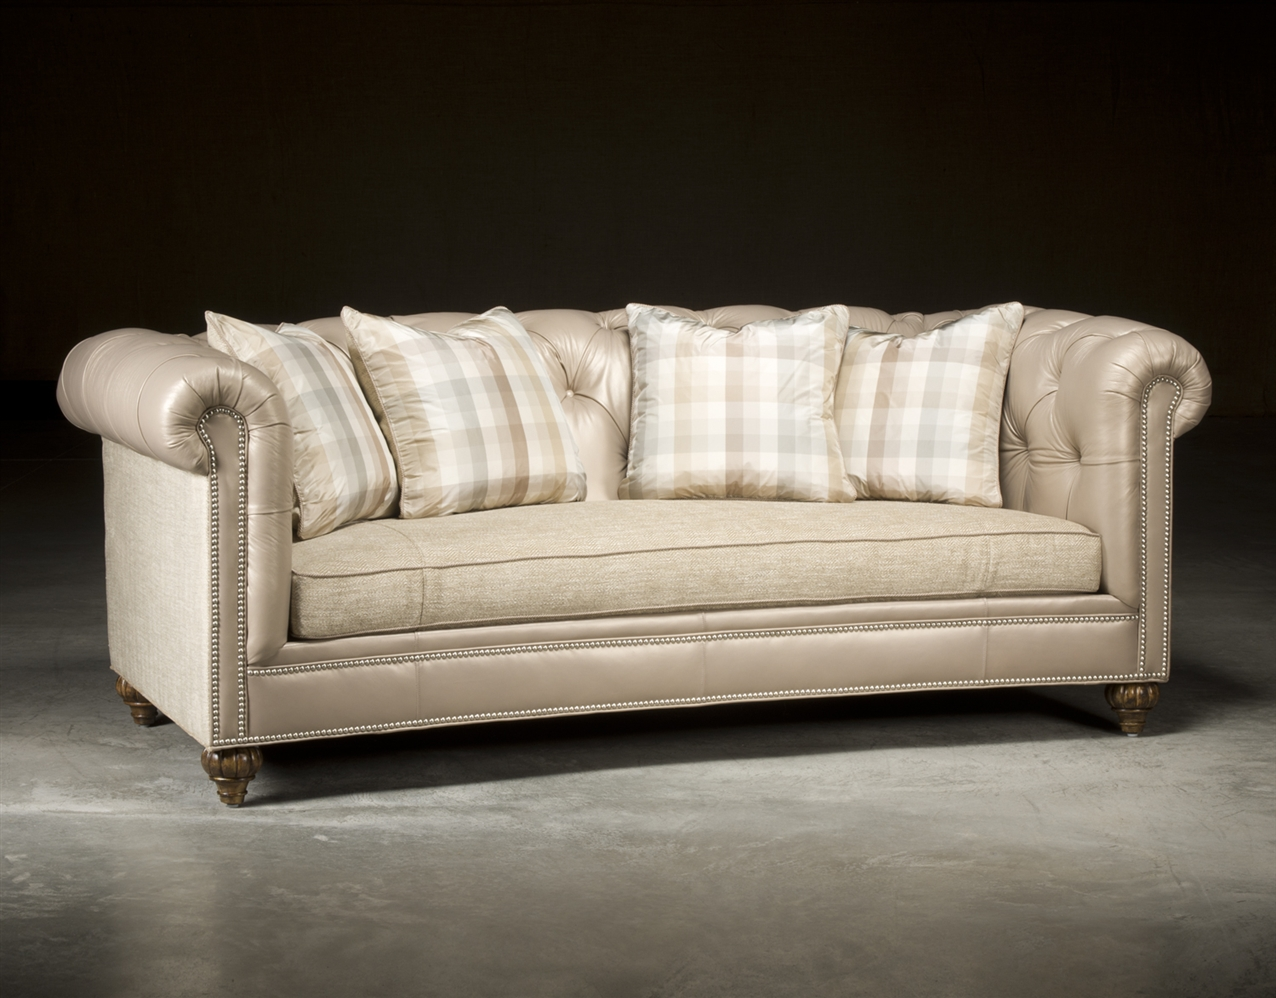 Chesterfield tufted sofa high end upholstered furniture for Couch chesterfield